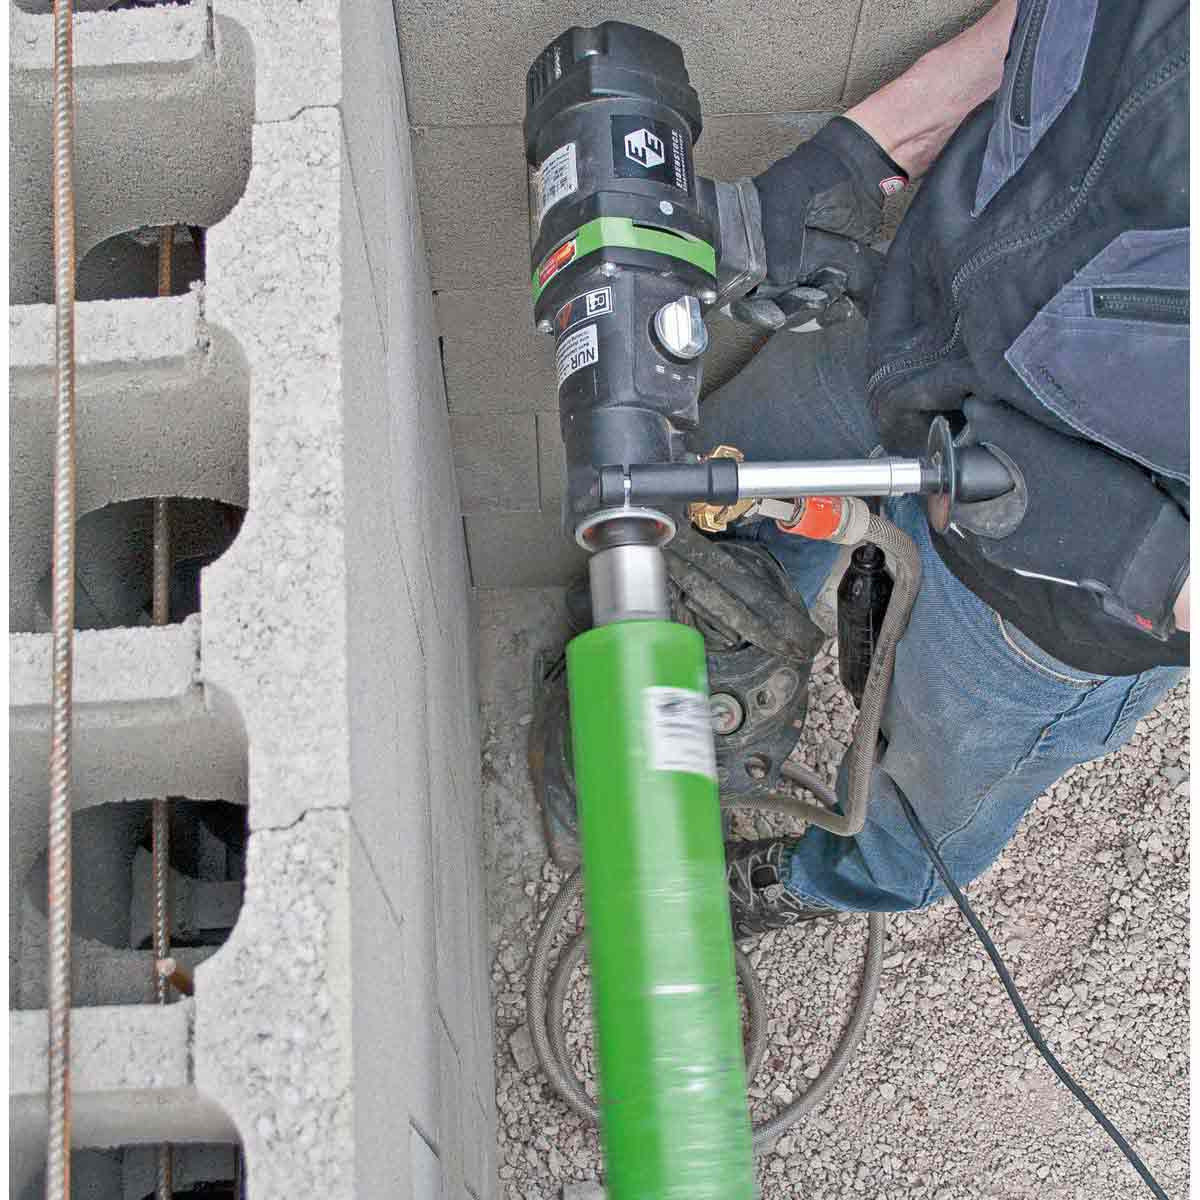 Eibenstock 3-Speed Hand core drill